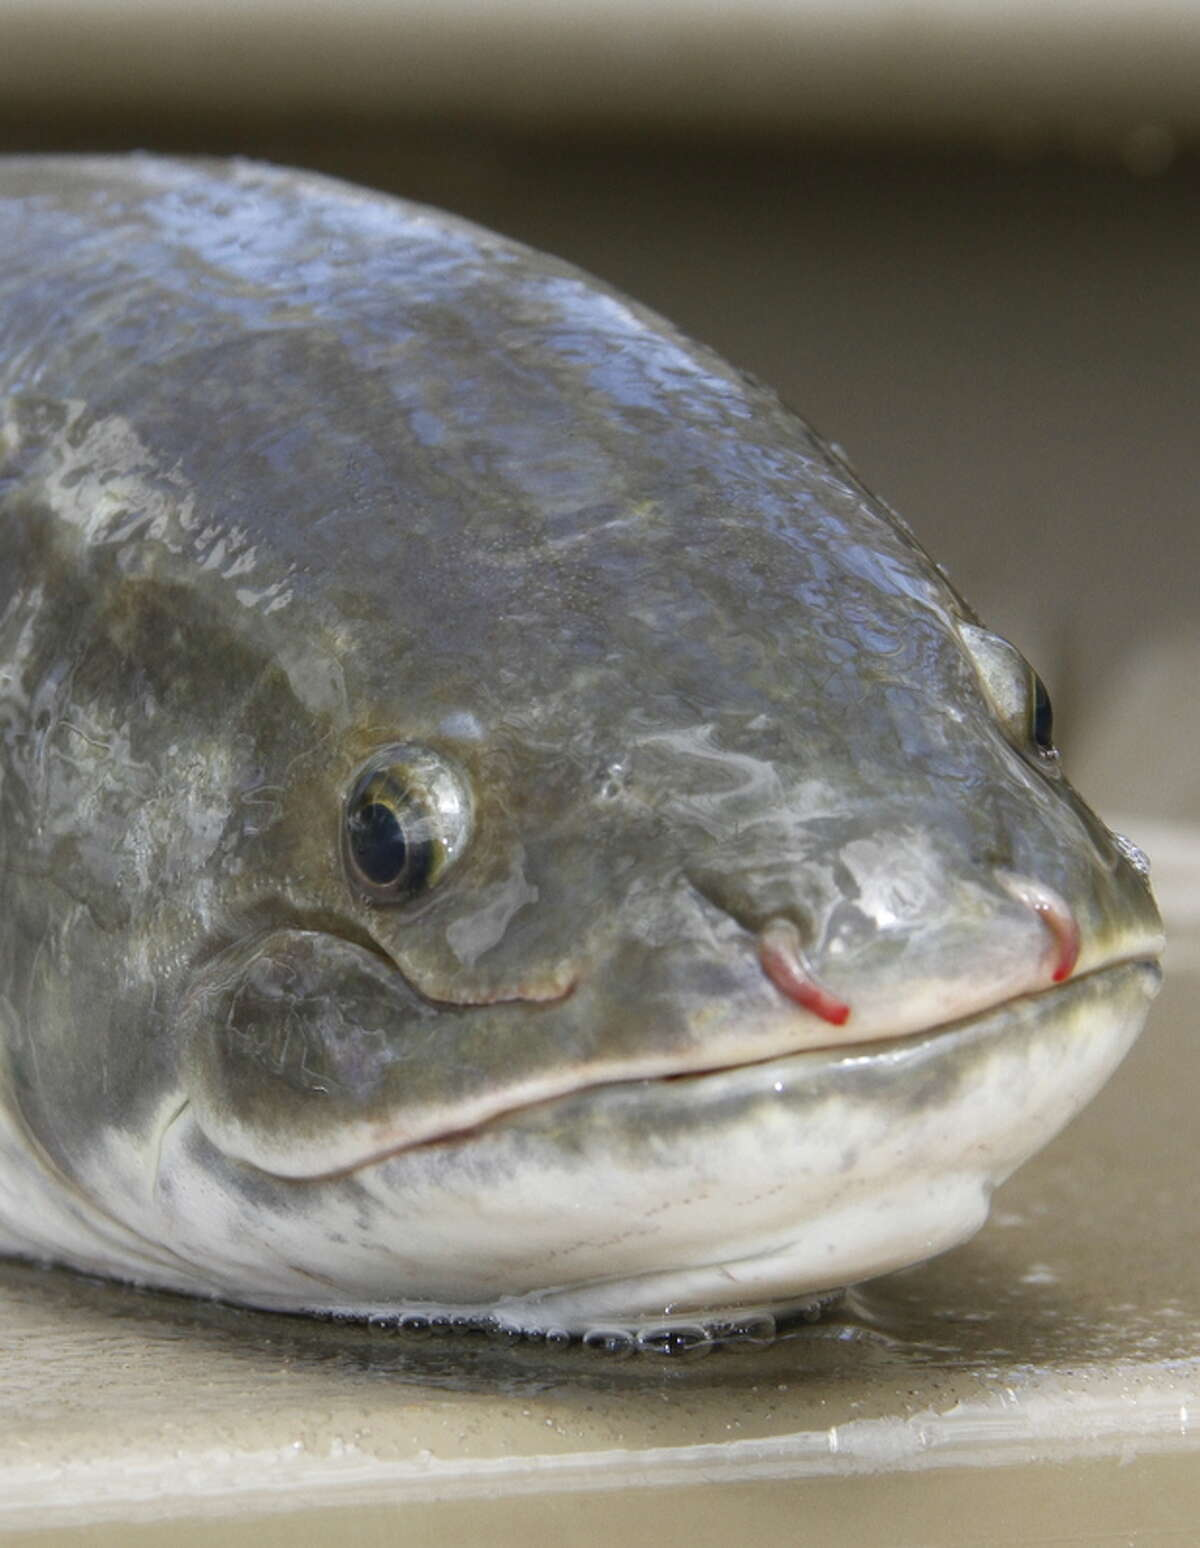 """""""Grinner"""" is one of the bowfin's many colloquial names, almost certainly referring to smile-like shape of the aggressive, hard-fighting swamp-dwelling fish's mouth."""